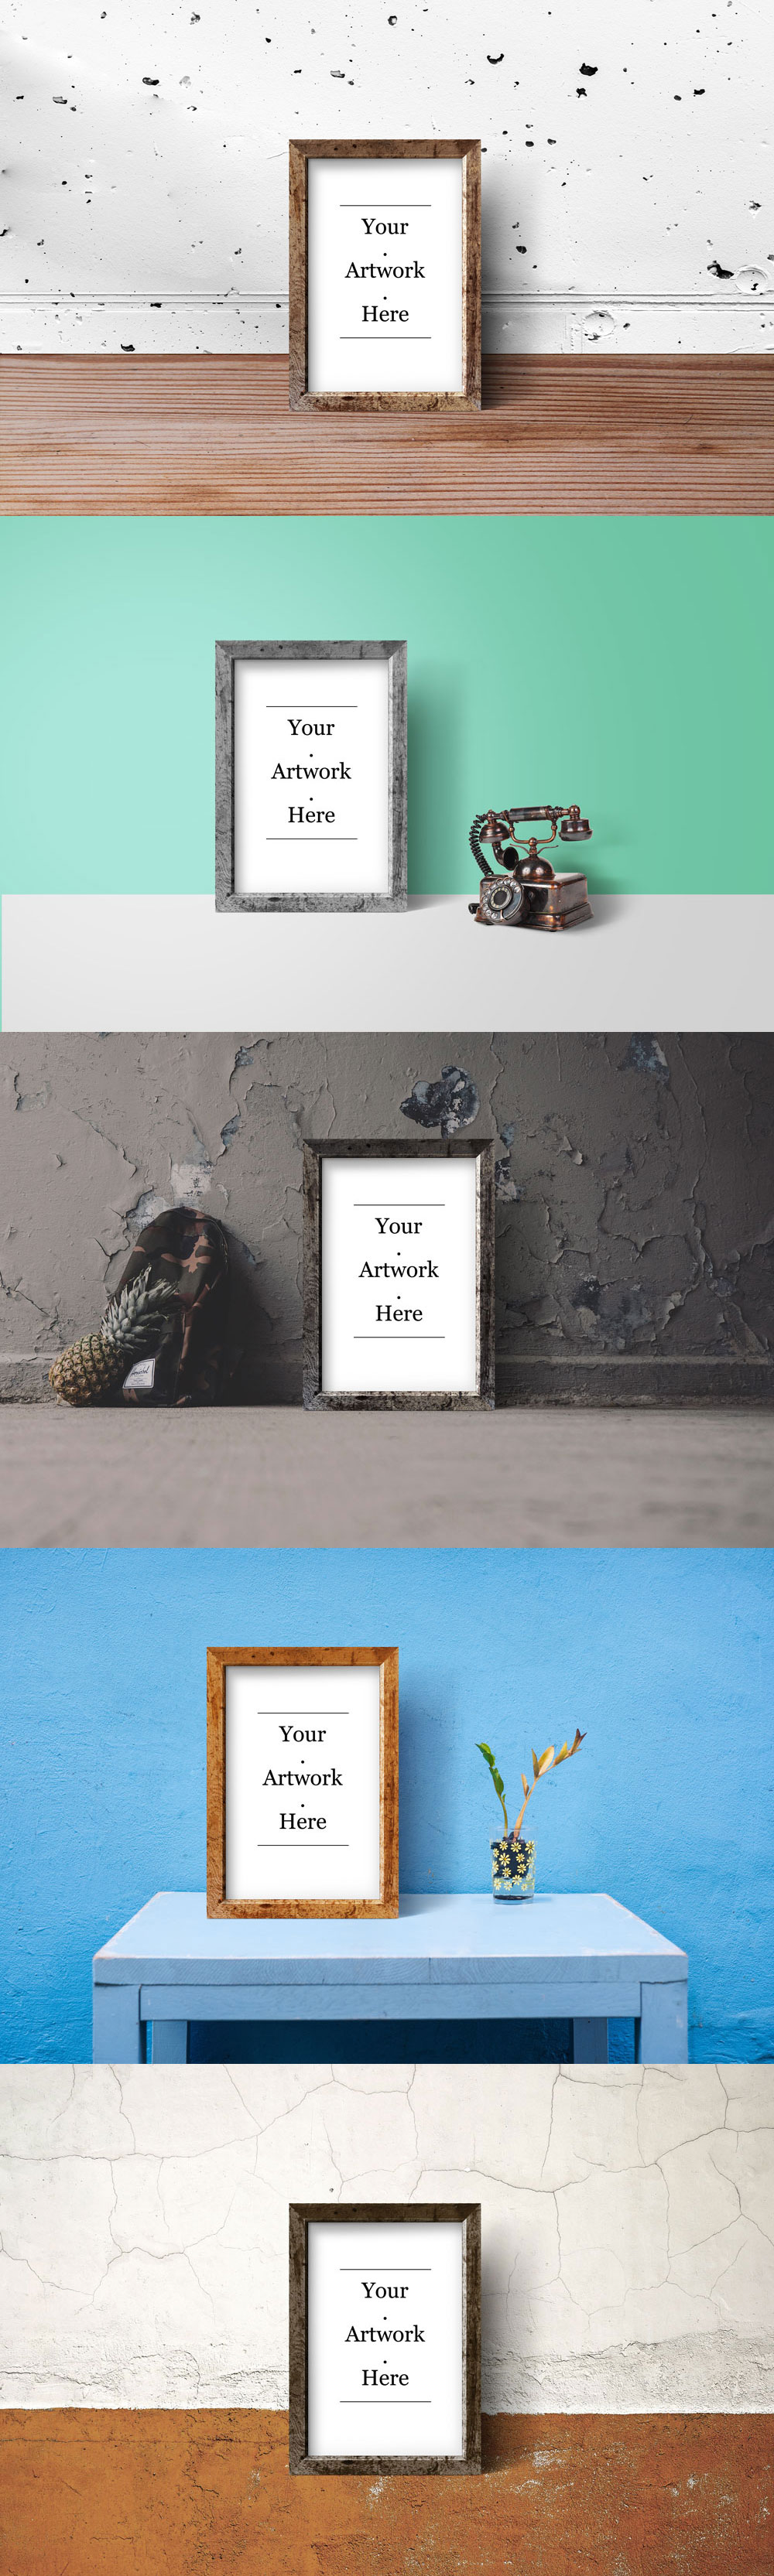 Rustic Photo Frame PSD Mockups